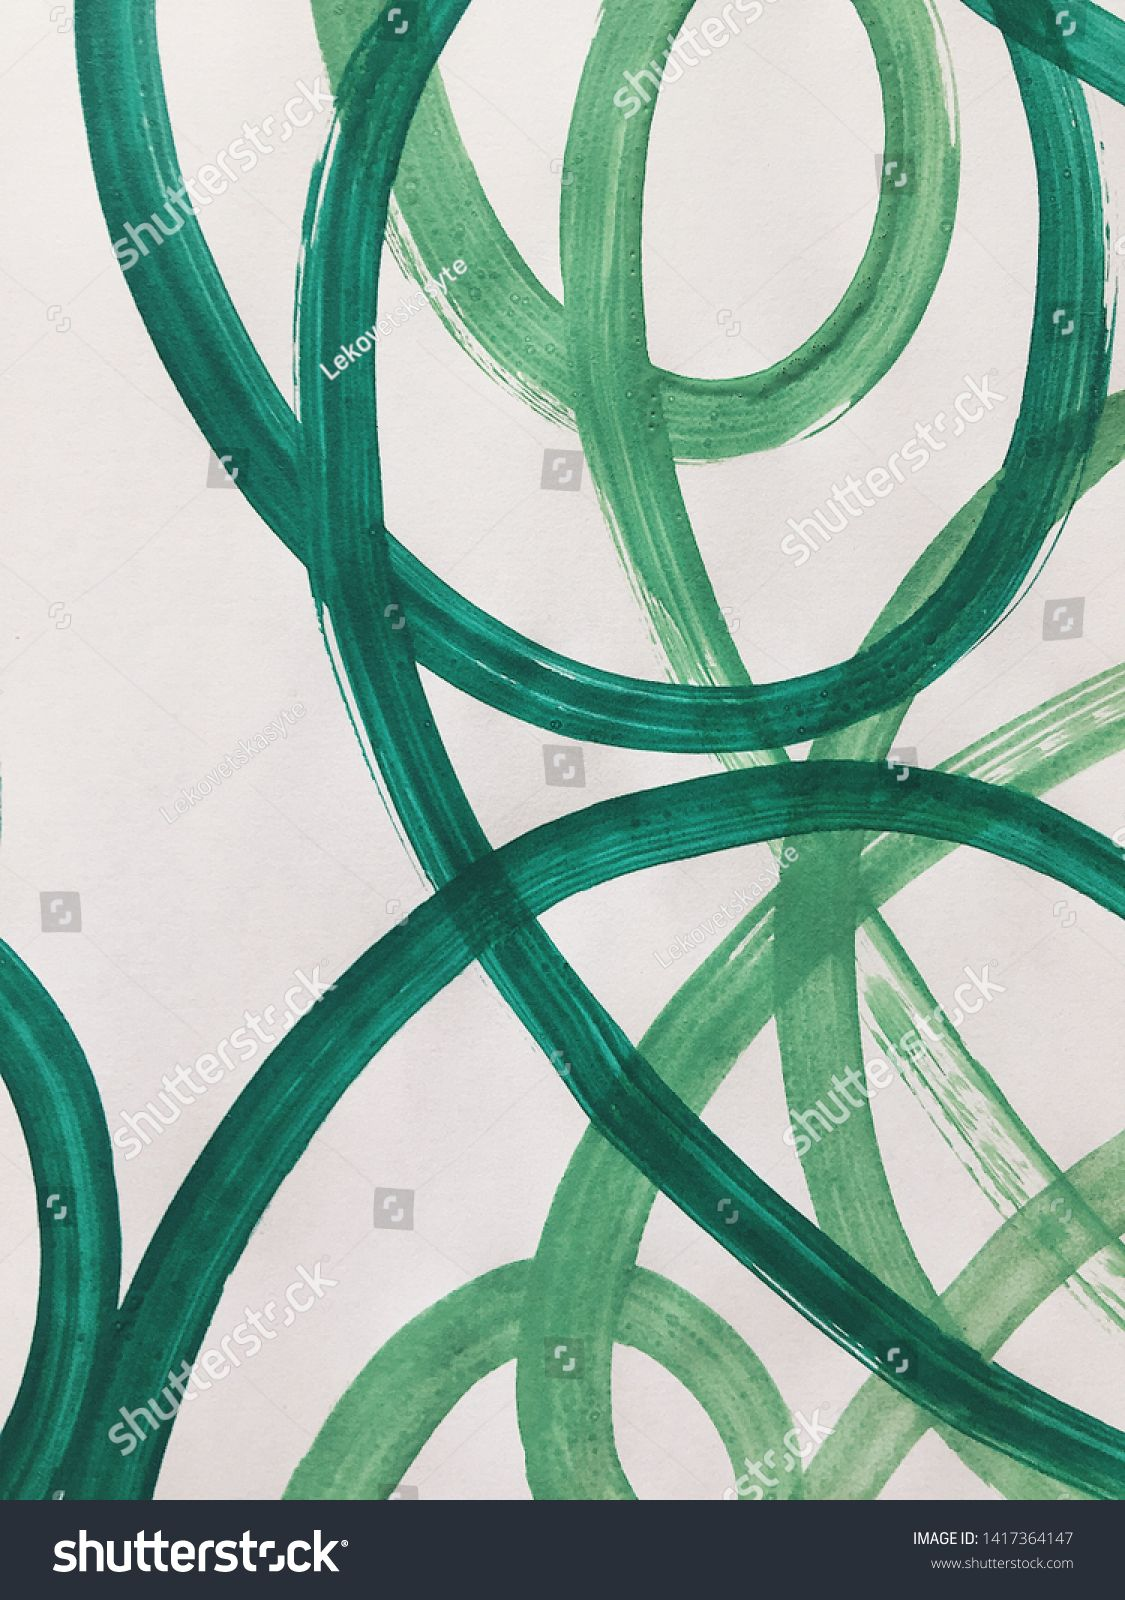 Bright green dynamic abstraction with acrylics. beautiful background. modern Art ,